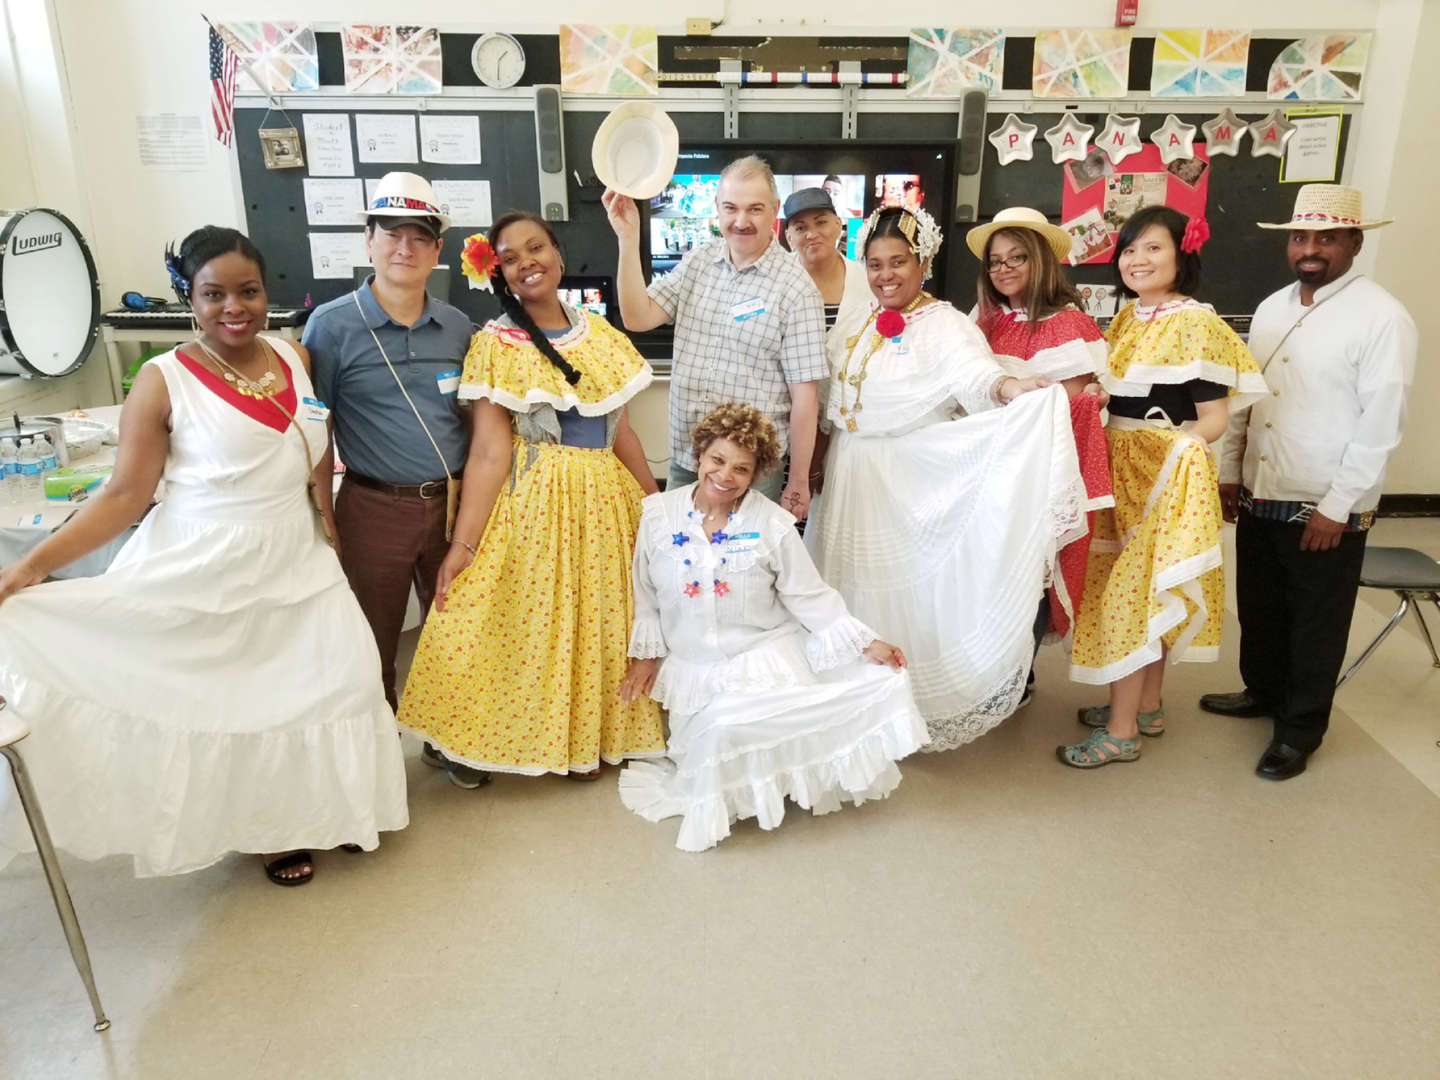 Staff Members dressed for multicultural PD day